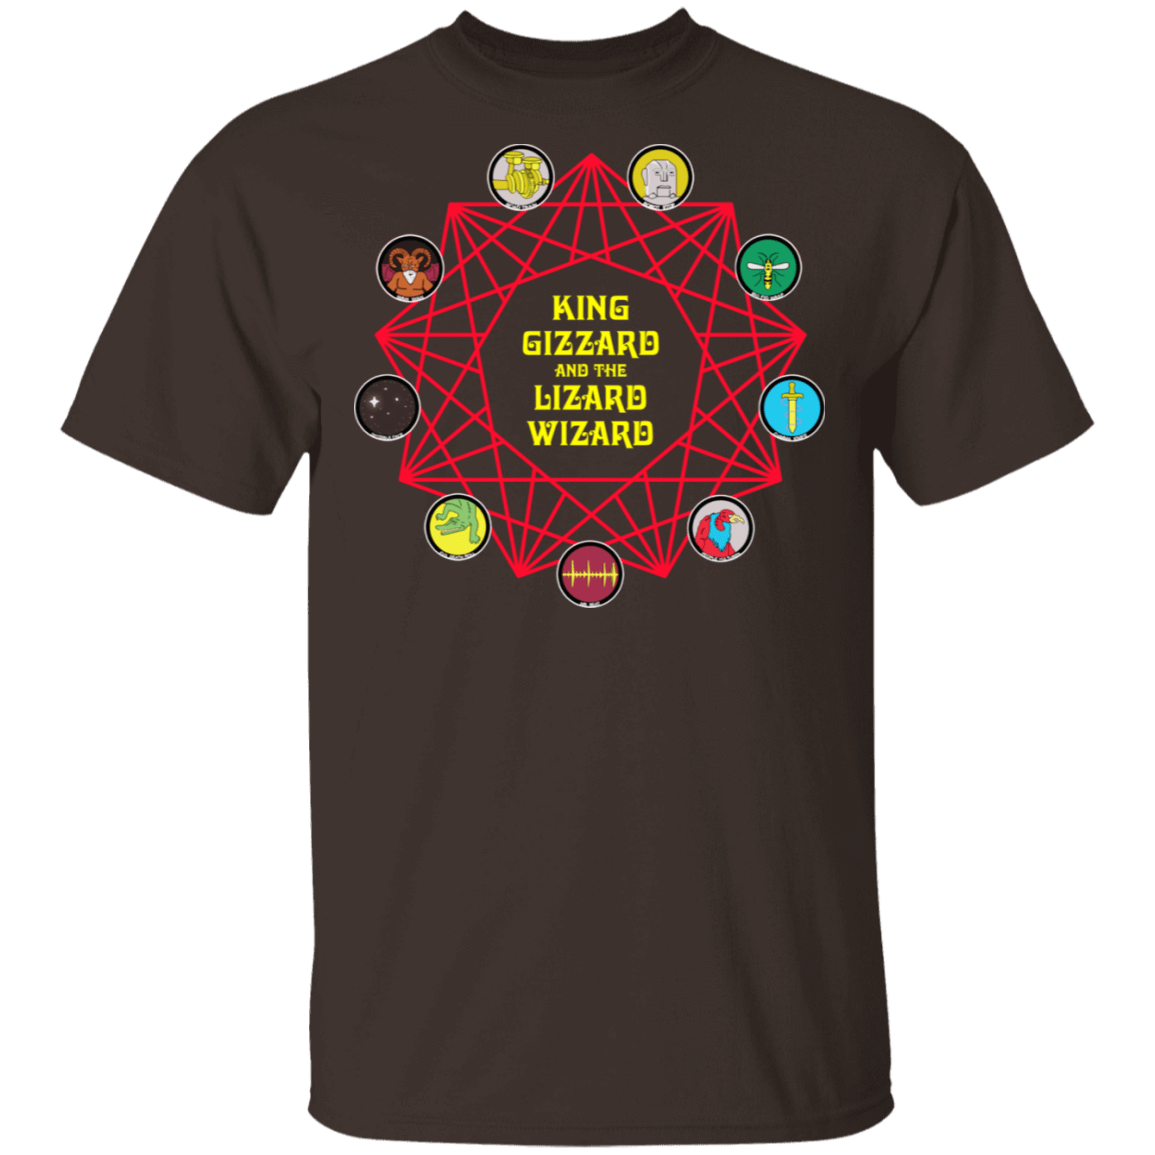 King Gizzard And The Lizard Wizard T-Shirts, Hoodies 1049-9956-85730012-48152 - Tee Ript